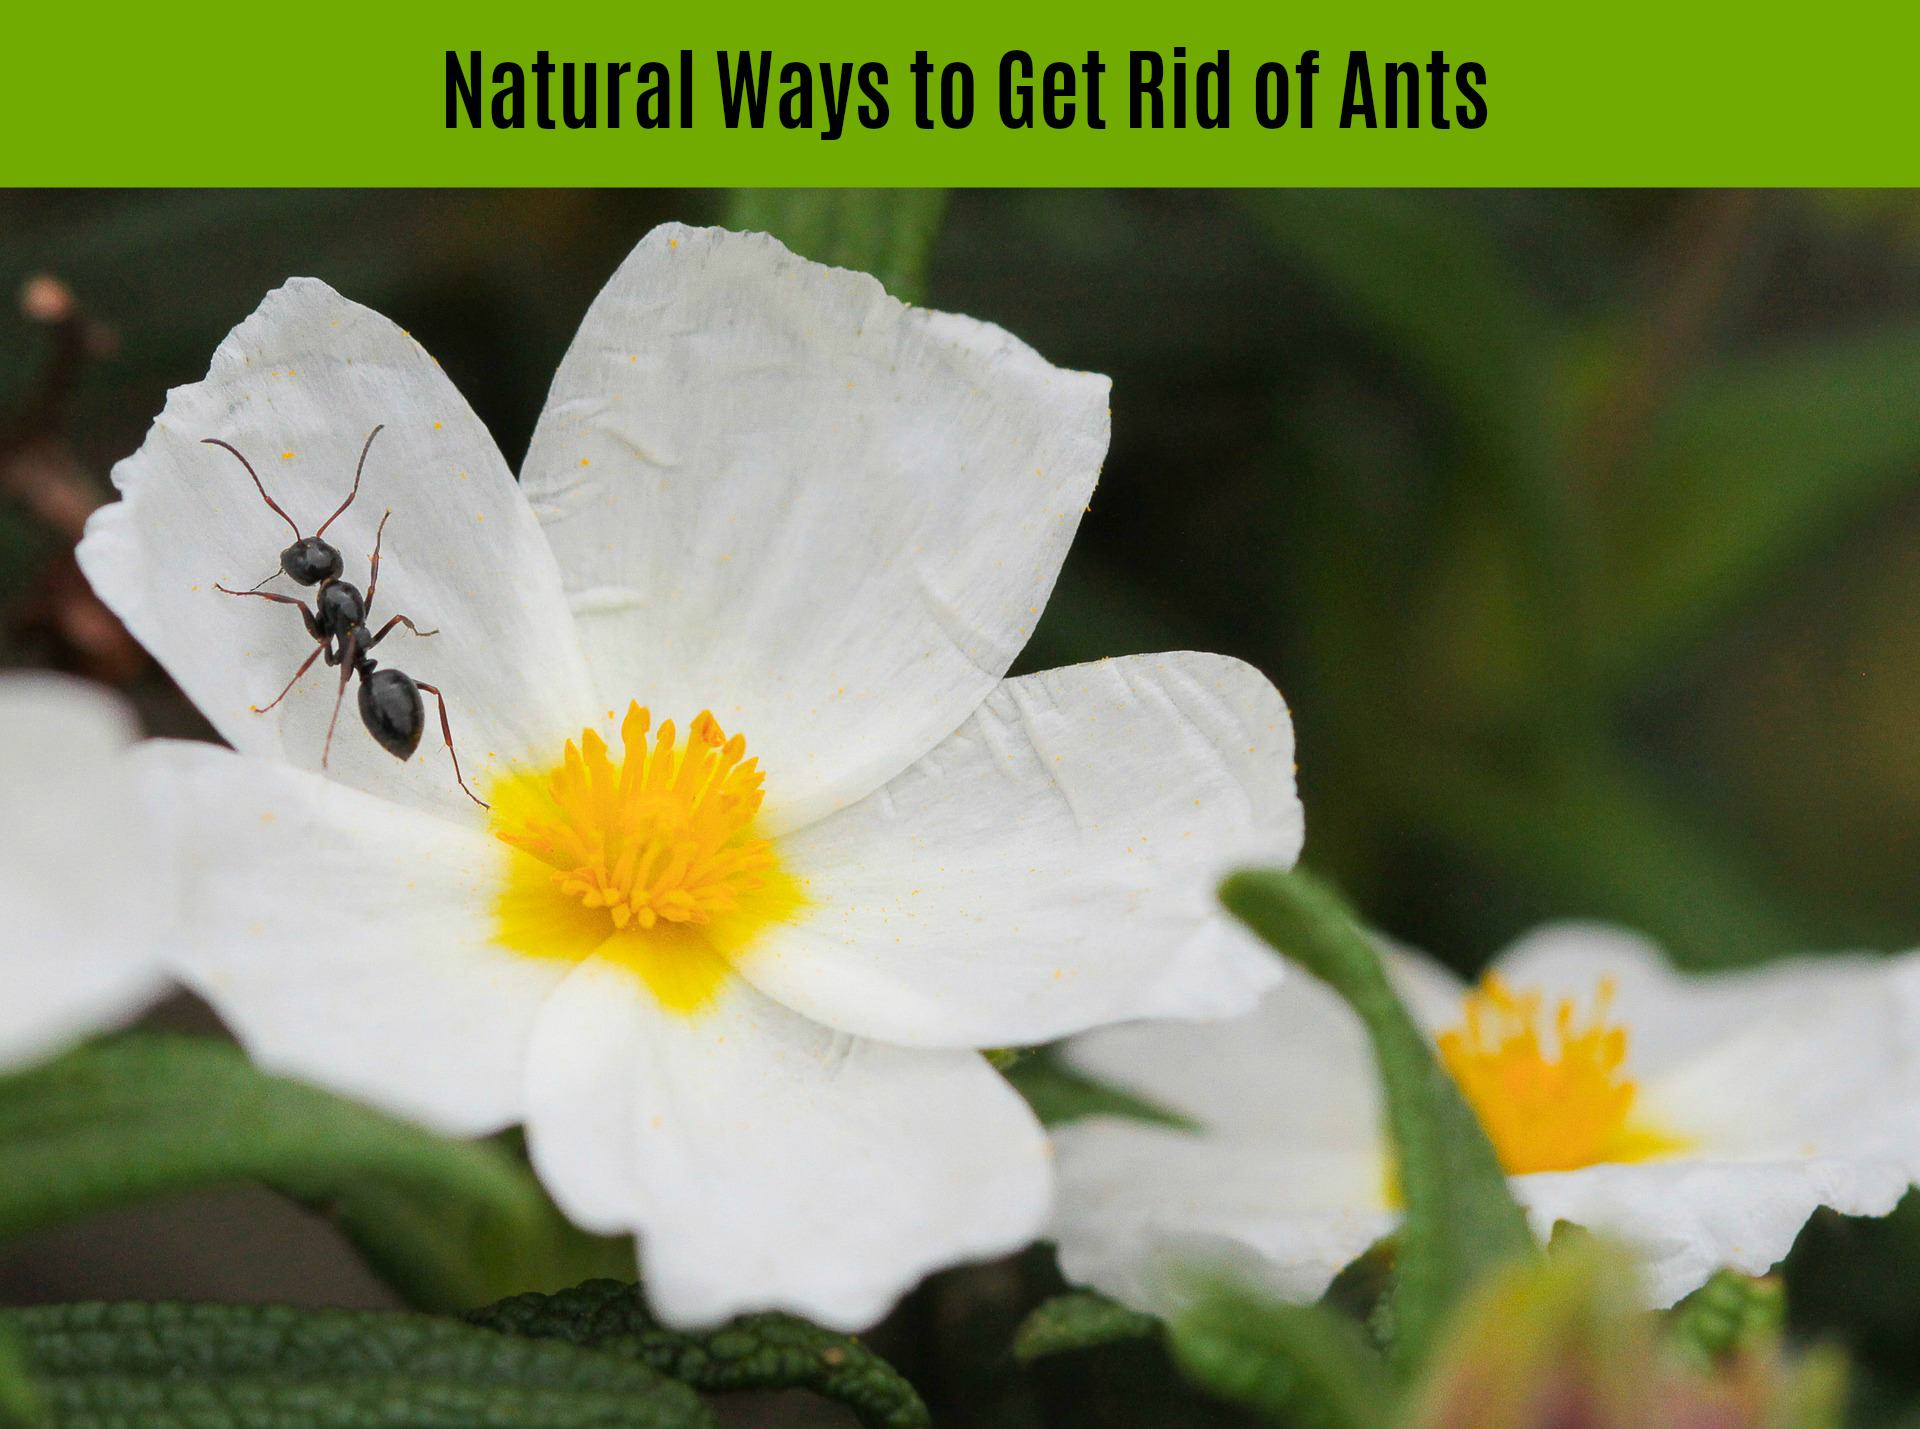 Ten Natural Home Remedies to Get Rid of Ants and Keep Them Out